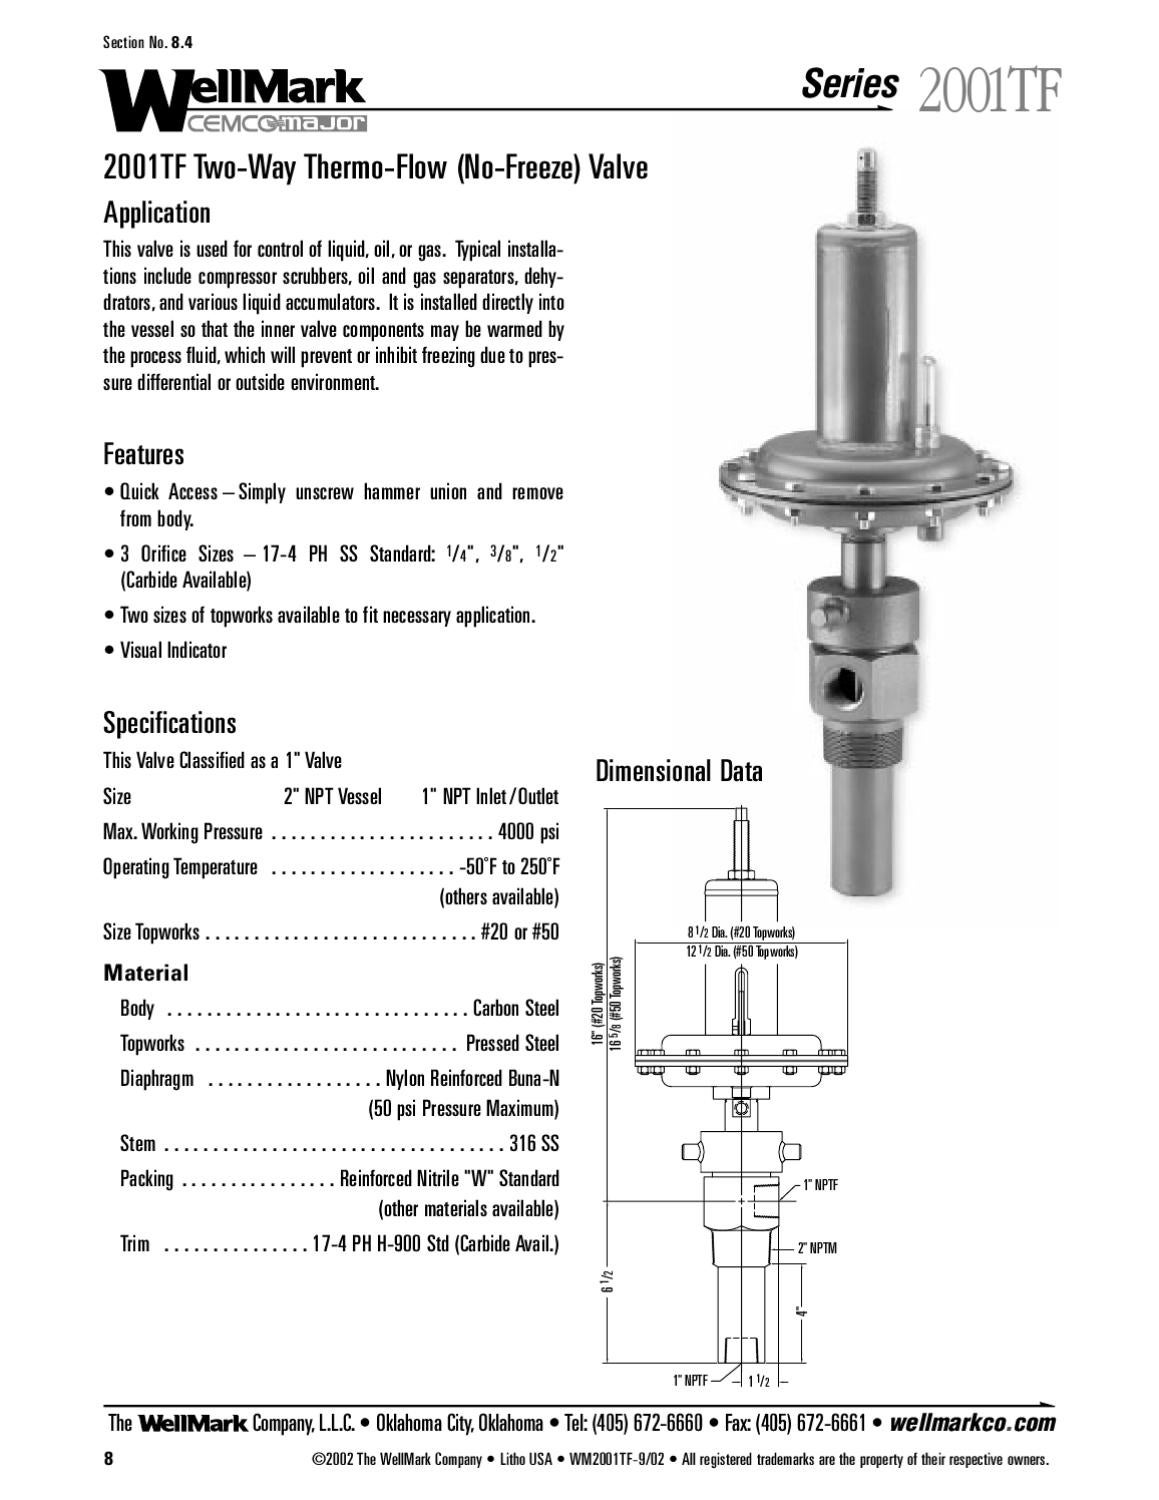 2001TF Valve Specification, Order Code & Parts Manual by